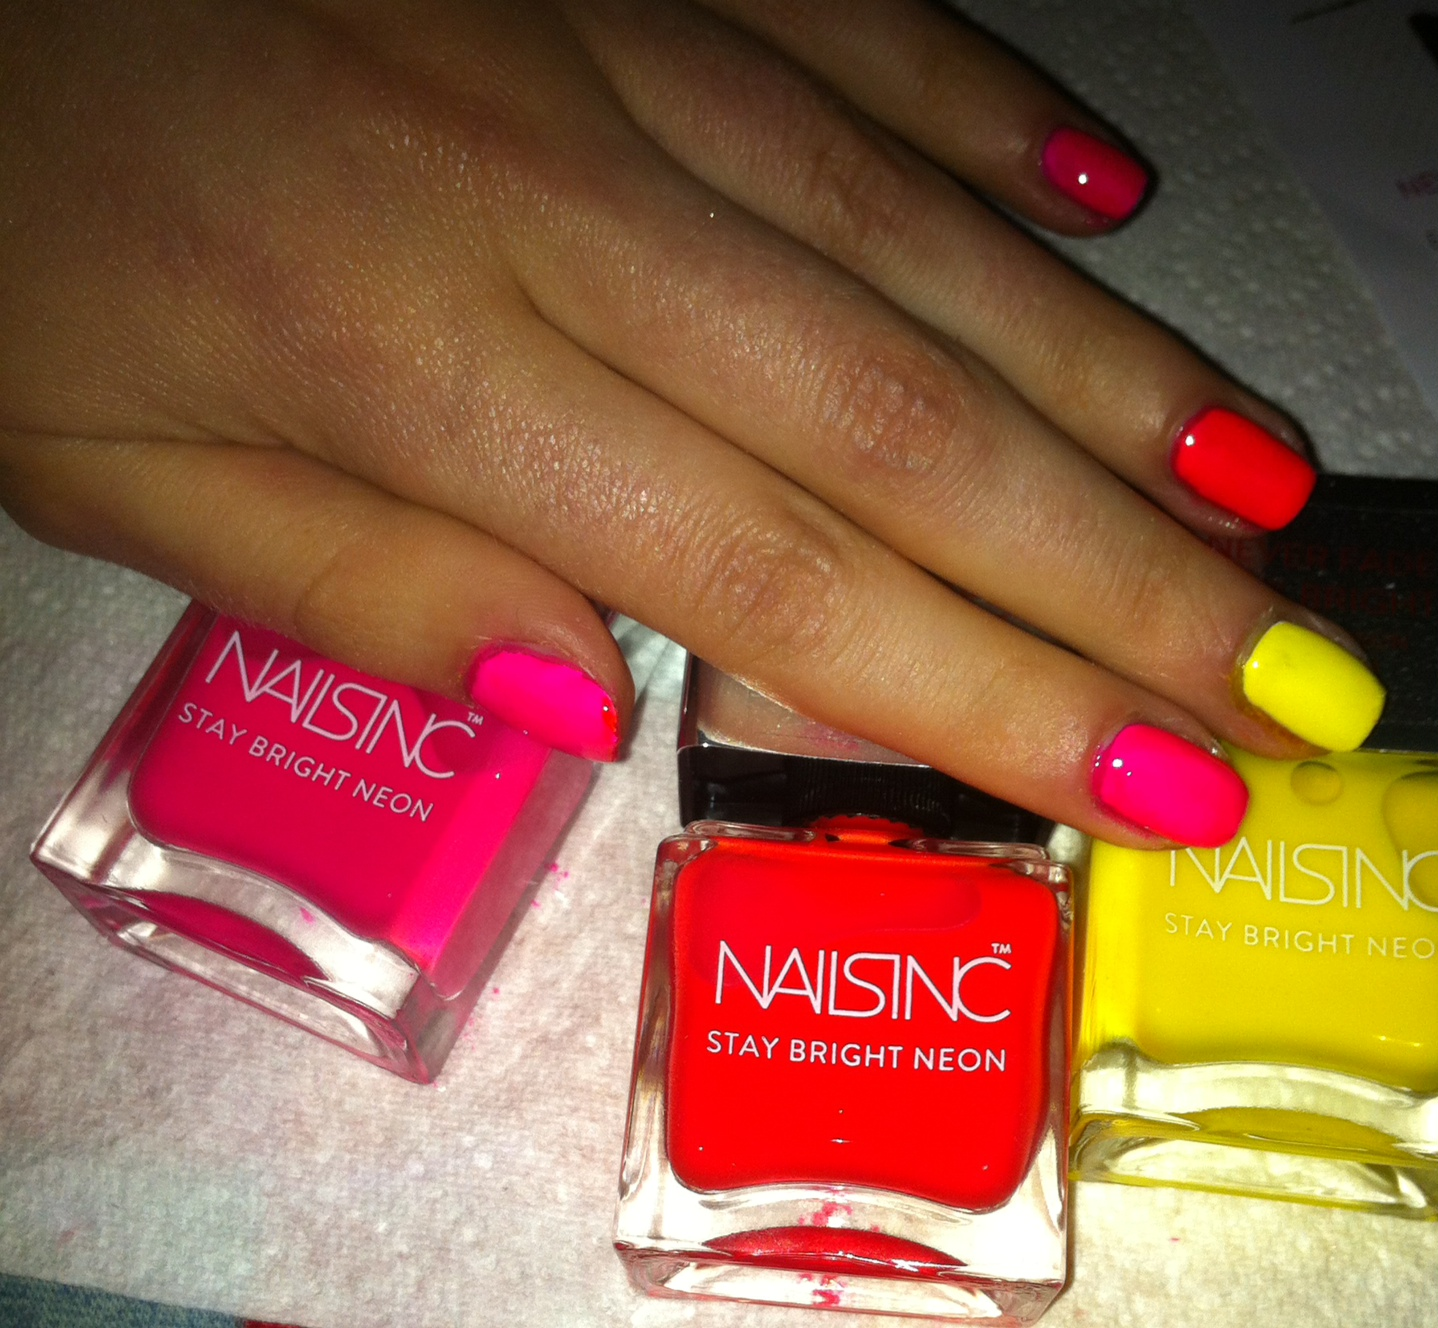 Oogle Makeup: Nails Inc Neon Nail Polish REVIEW